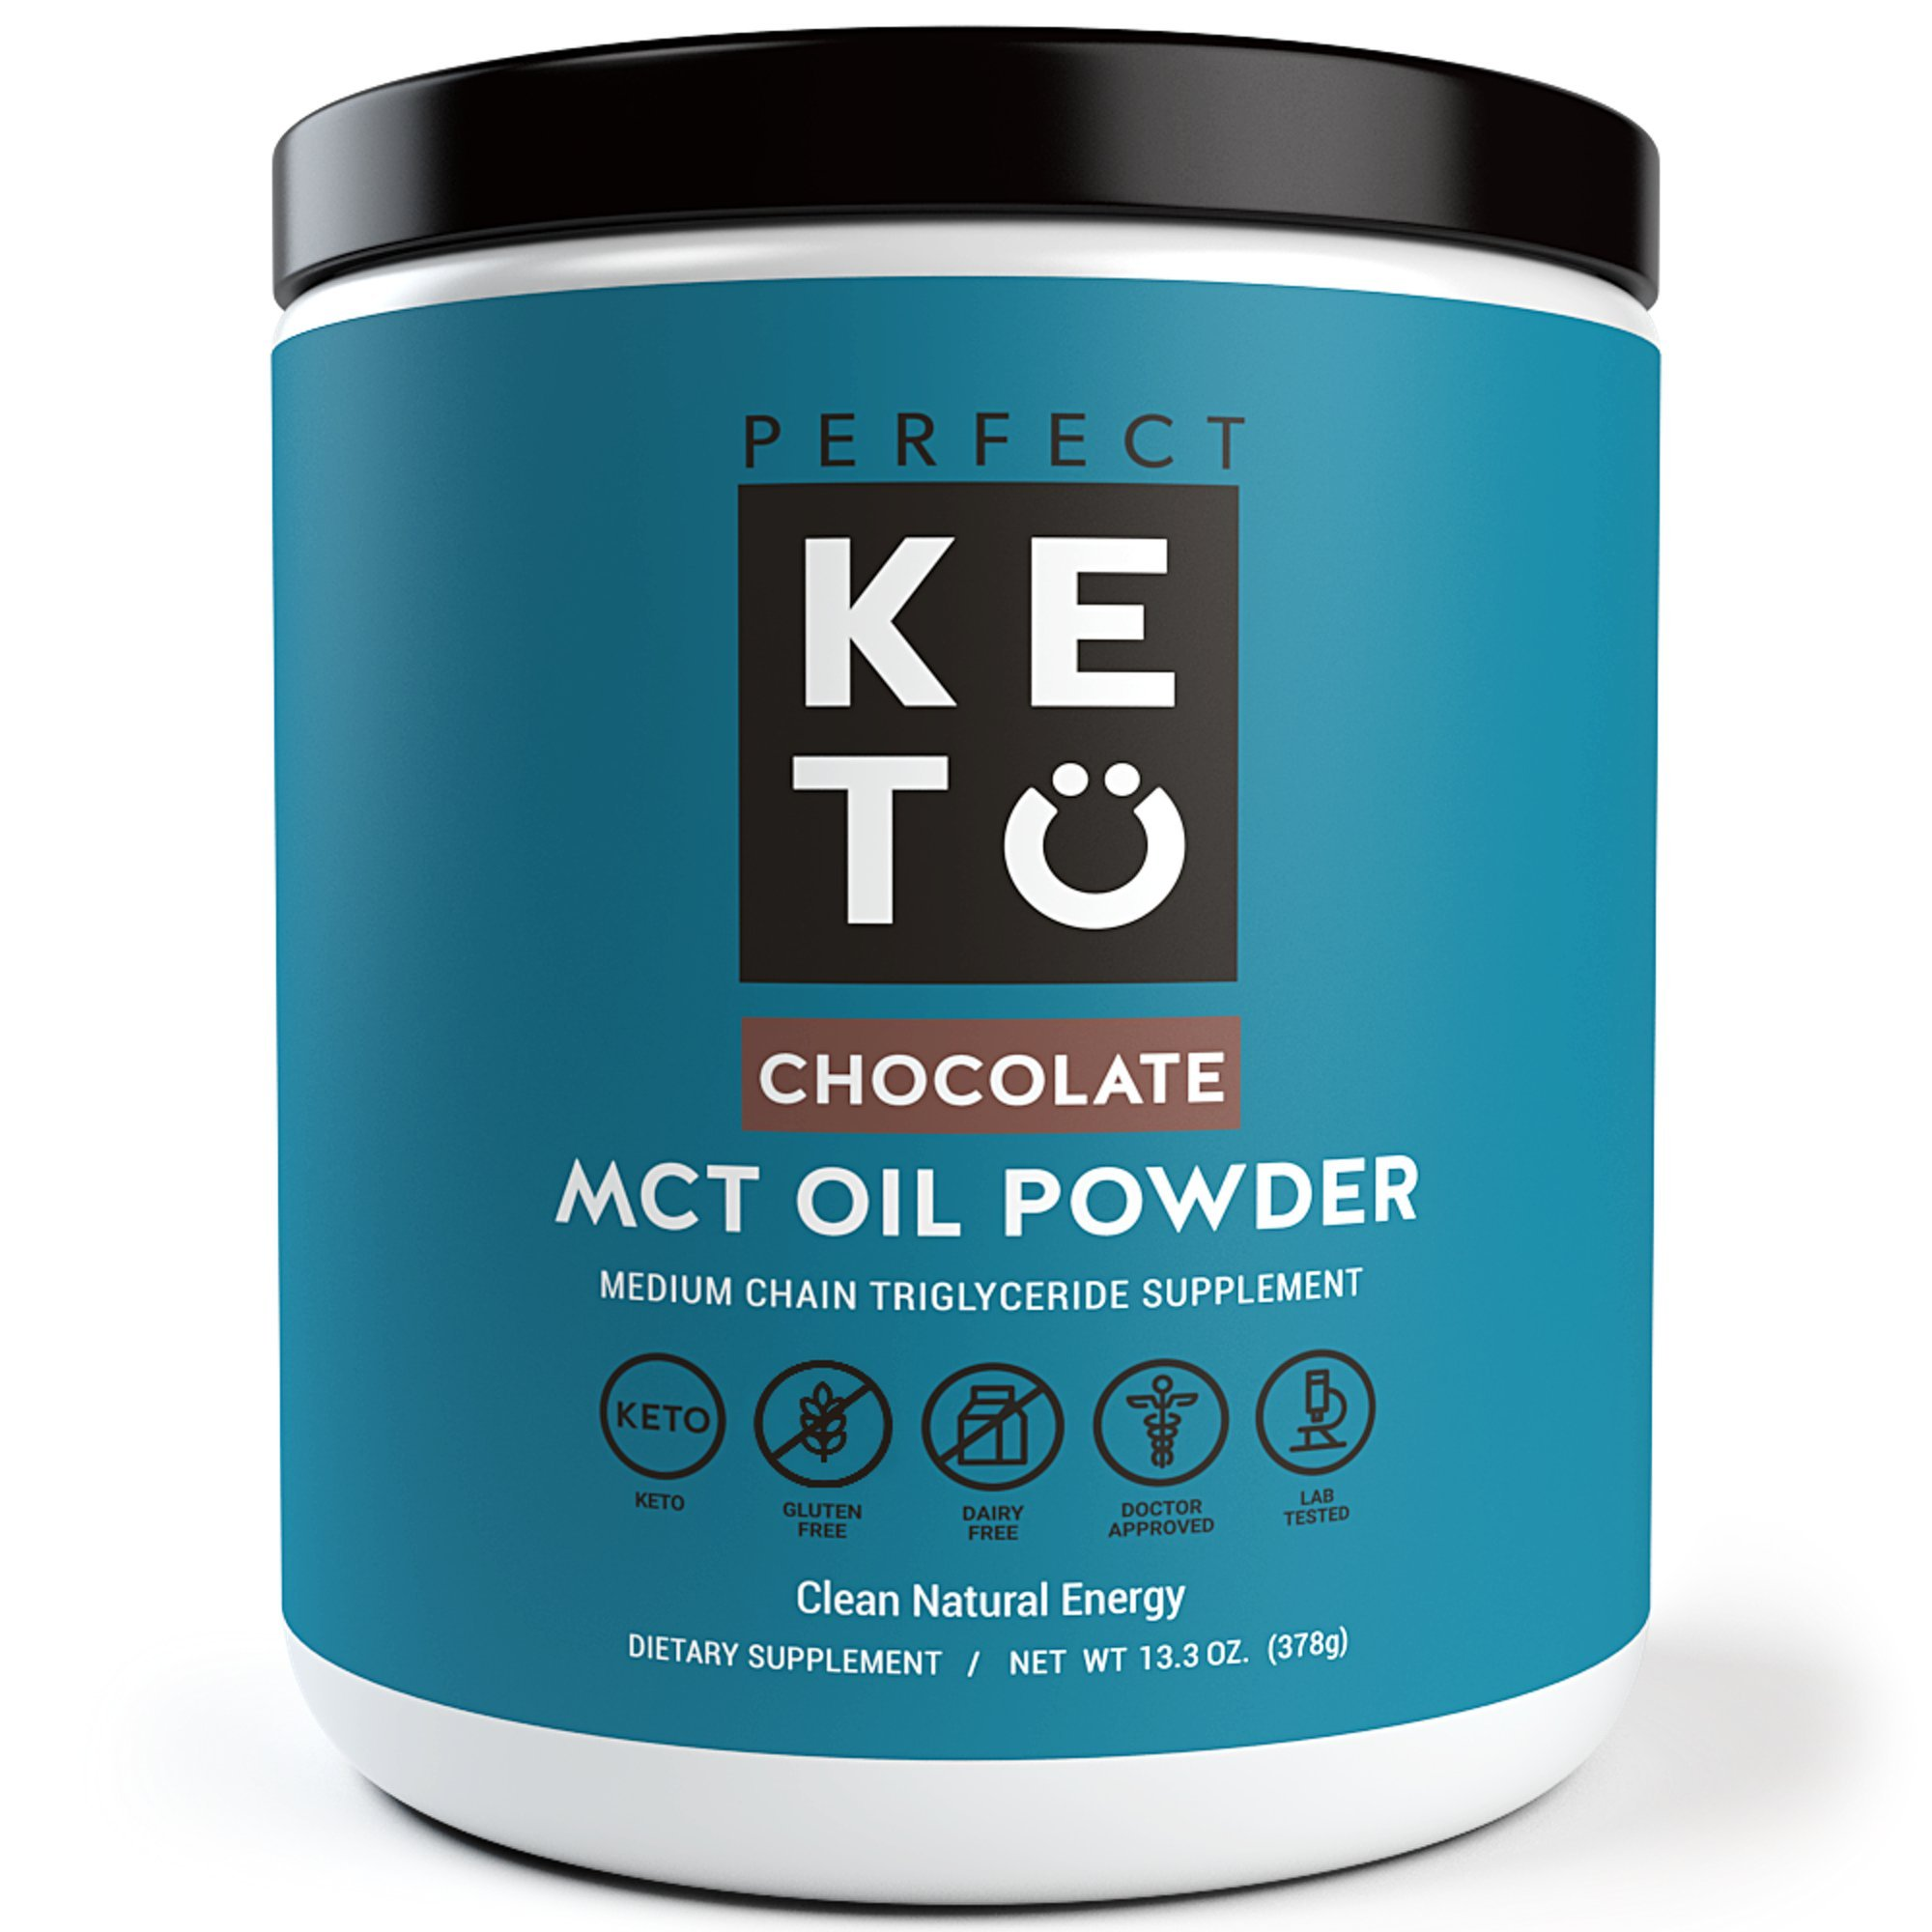 Perfect Keto MCT Oil Powder: Chocolate Ketosis Supplement to Burn Fat for Fuel Using (Medium Chain Triglycerides - Coconuts) for Ketone Energy - Paleo Natural Non Dairy Ketogenic Keto Coffee Creamer